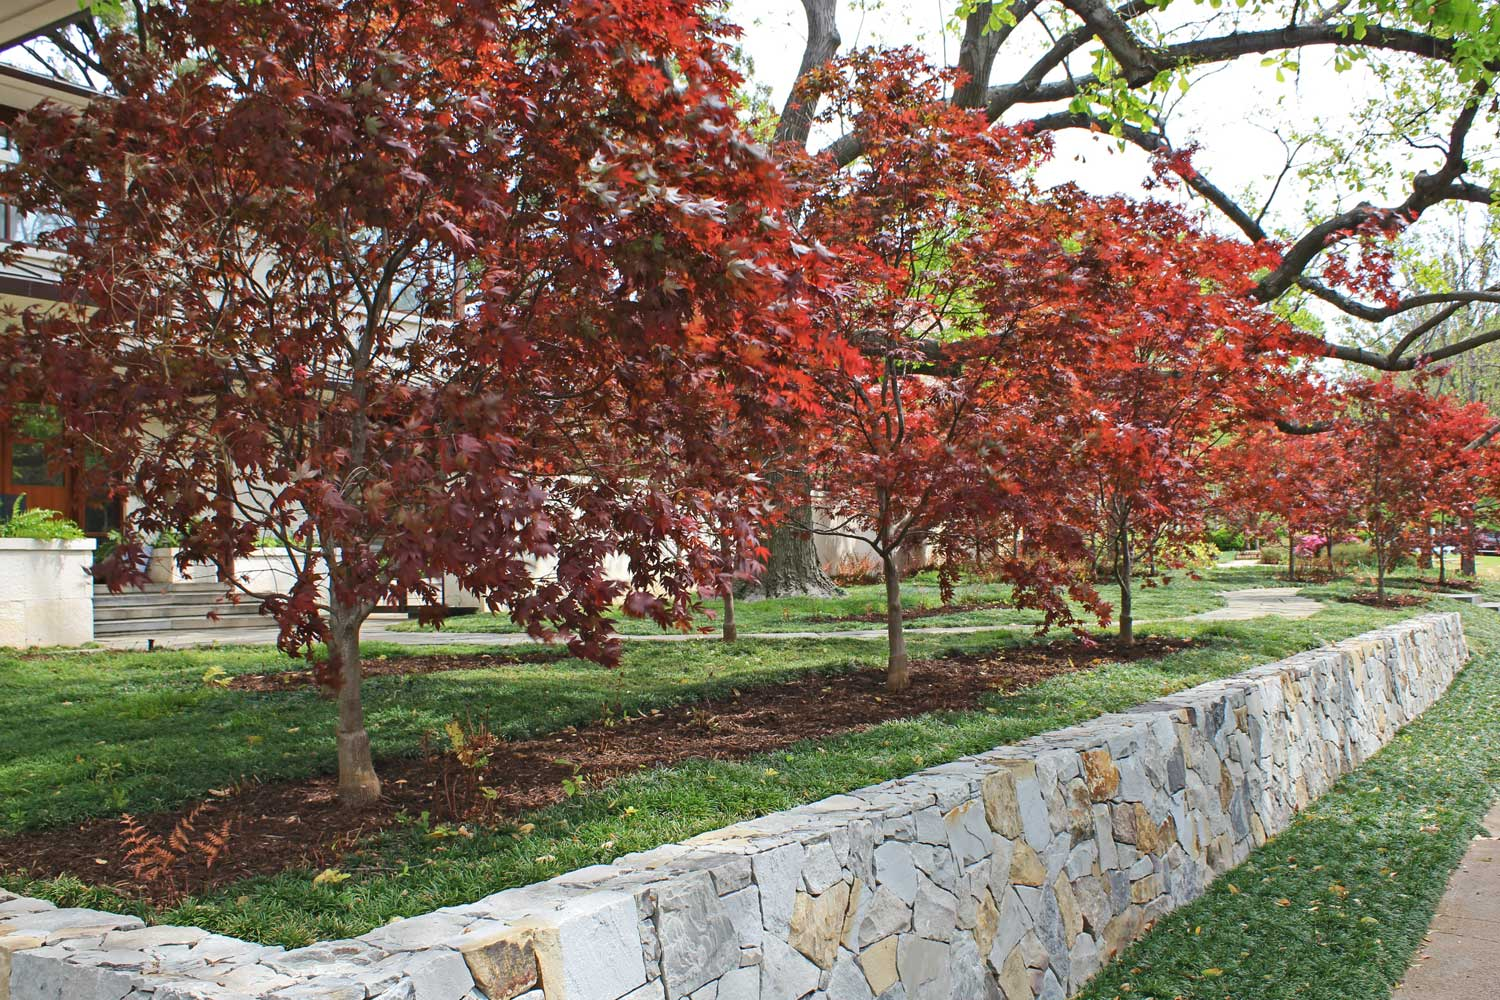 Japanese Maples planted in a row create a great contrasting color for most stone materials used.